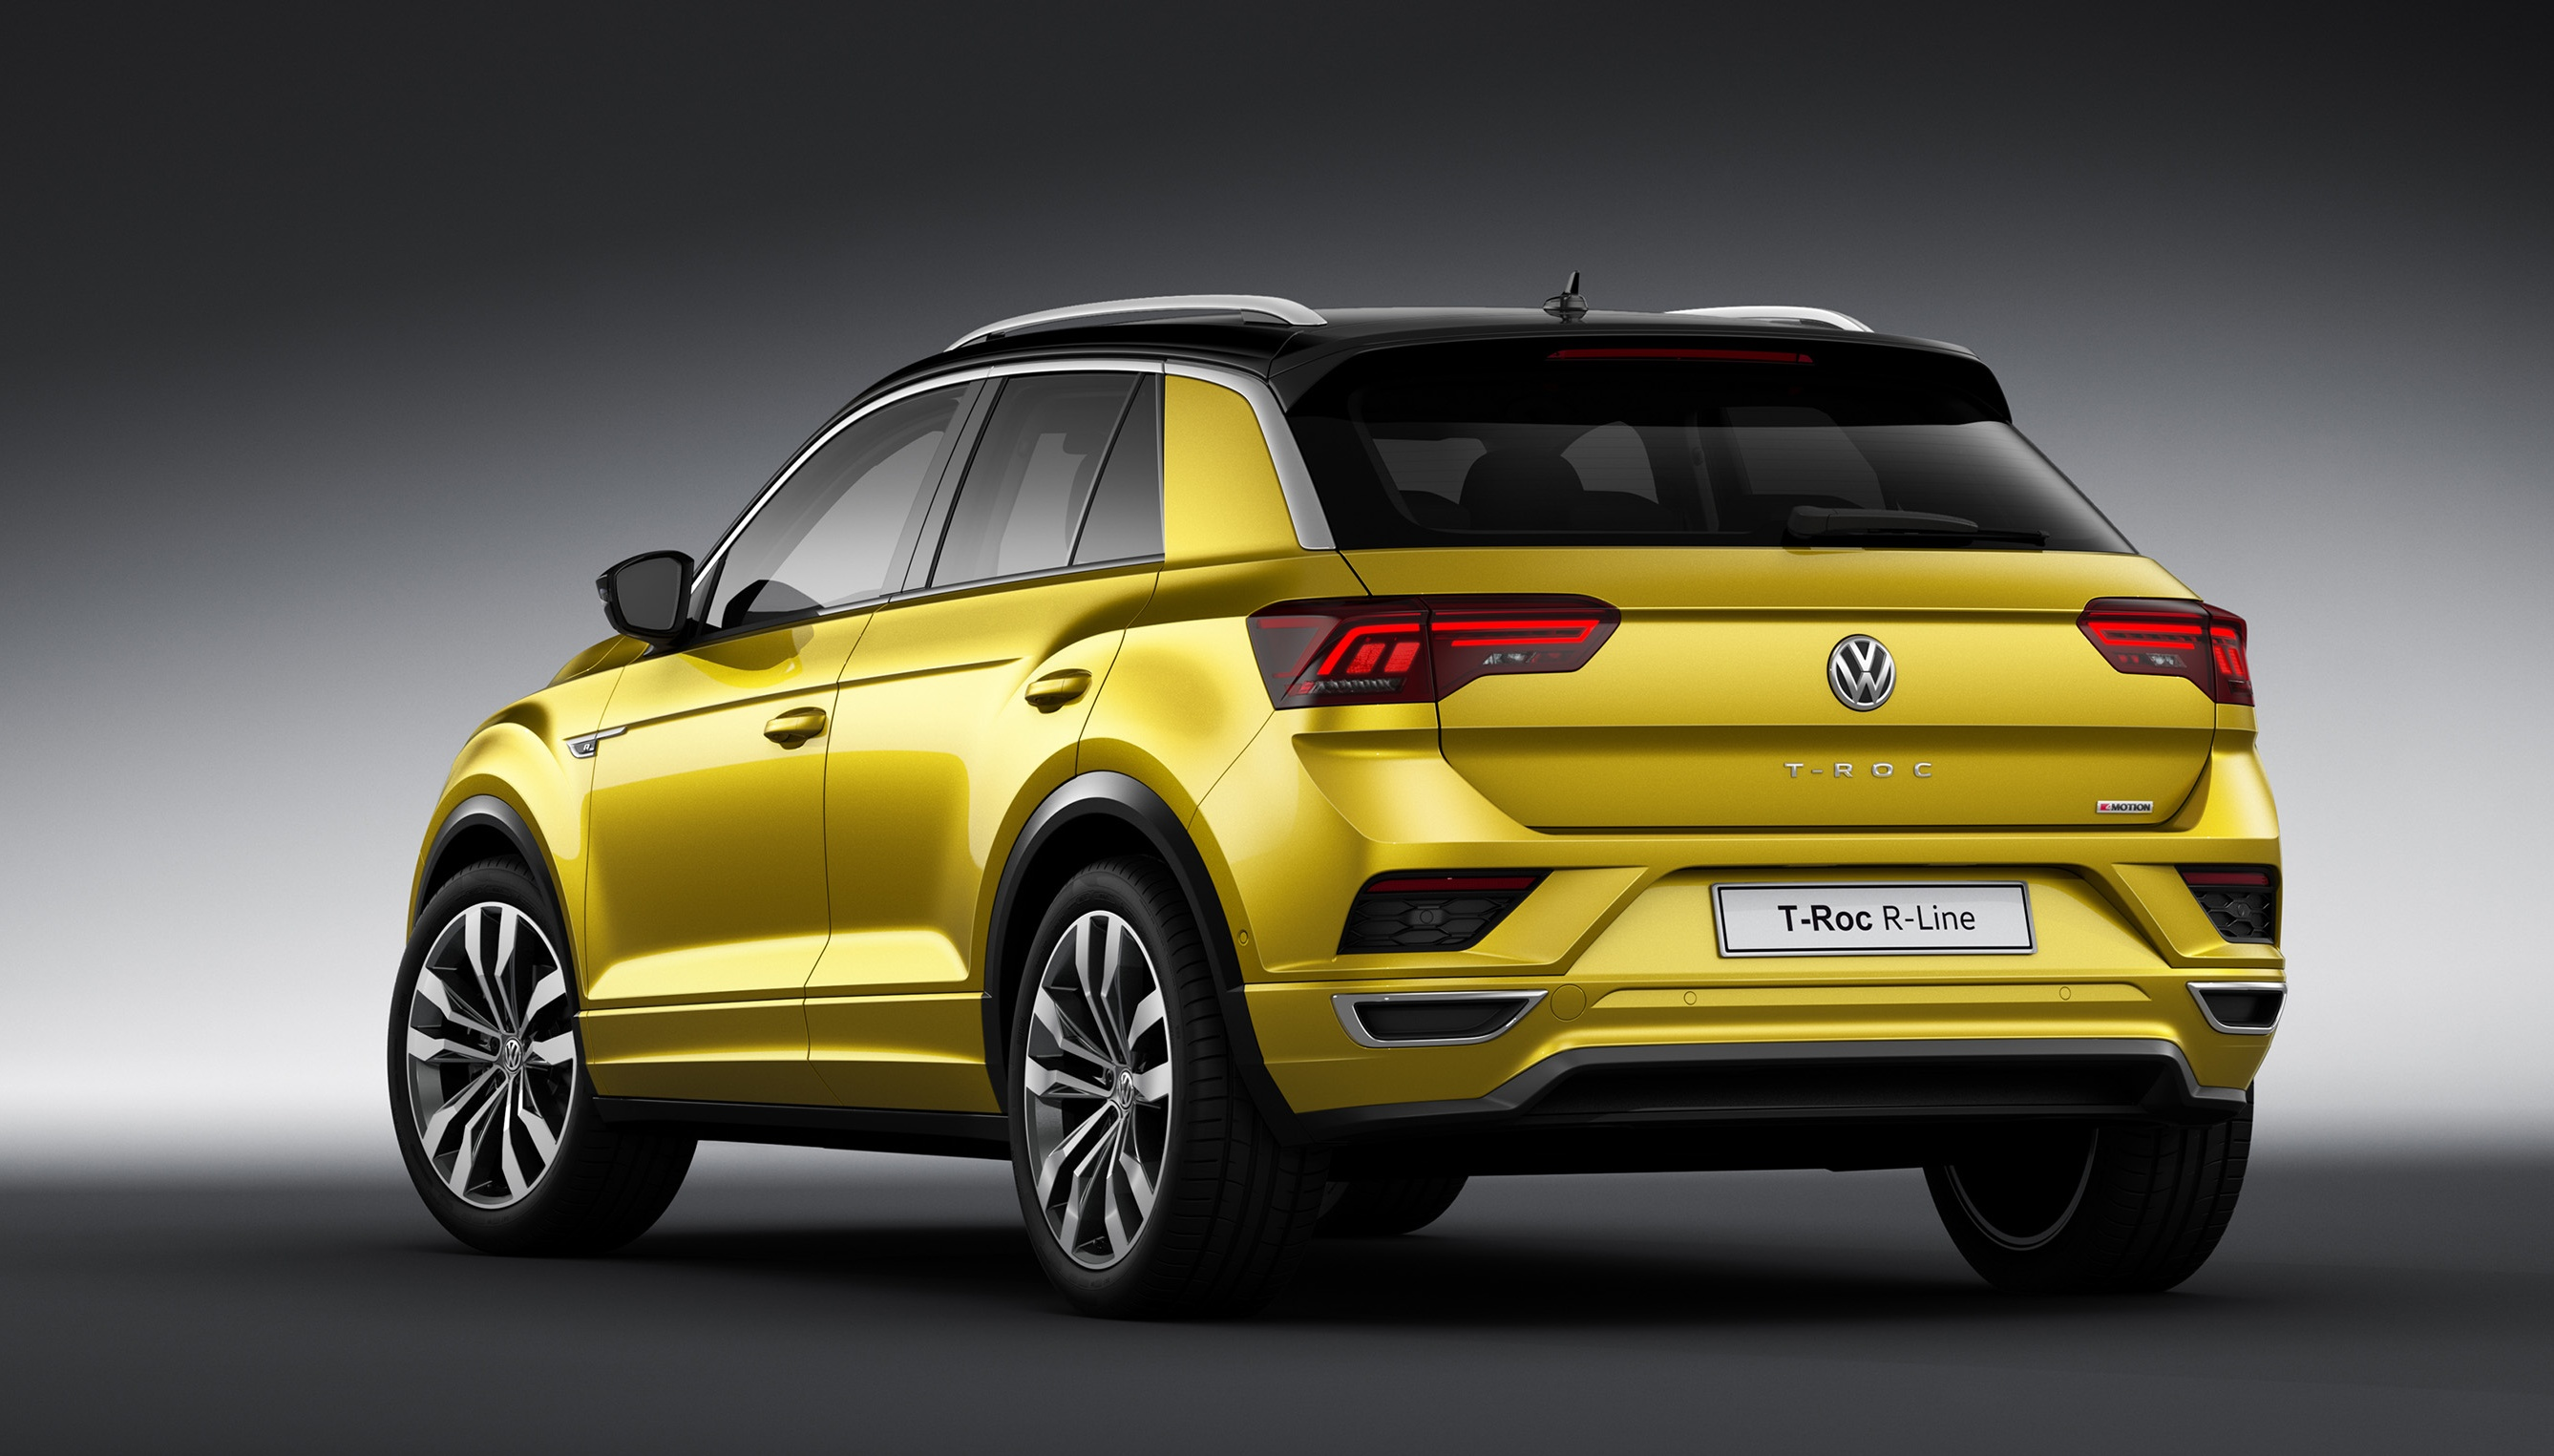 volkswagen t roc r line unveiled sportier look image 710376. Black Bedroom Furniture Sets. Home Design Ideas